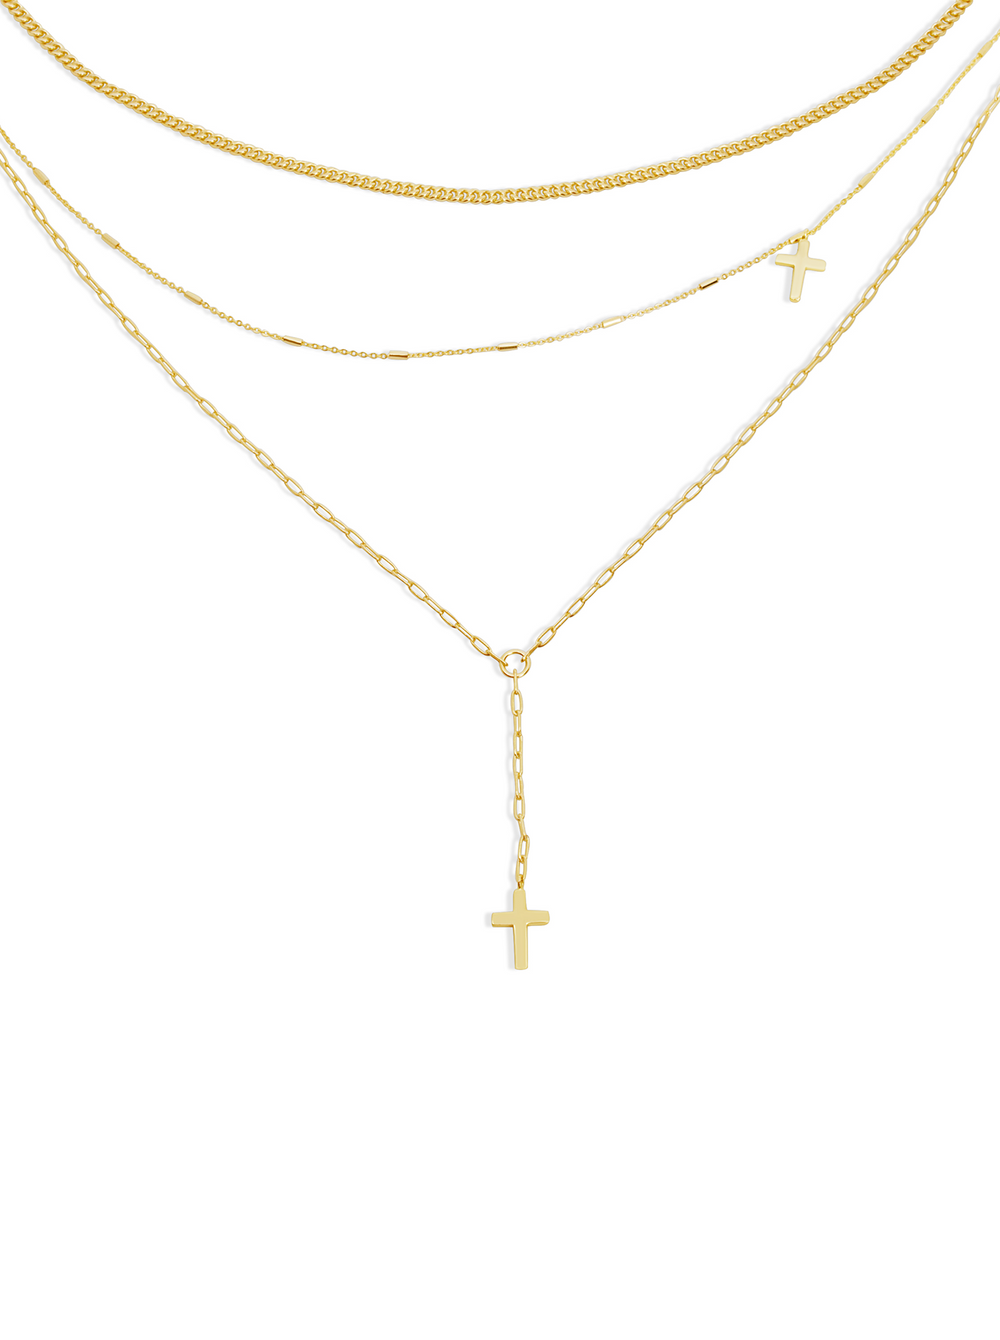 THE TRIPLE CHAIN CROSS NECKLACE